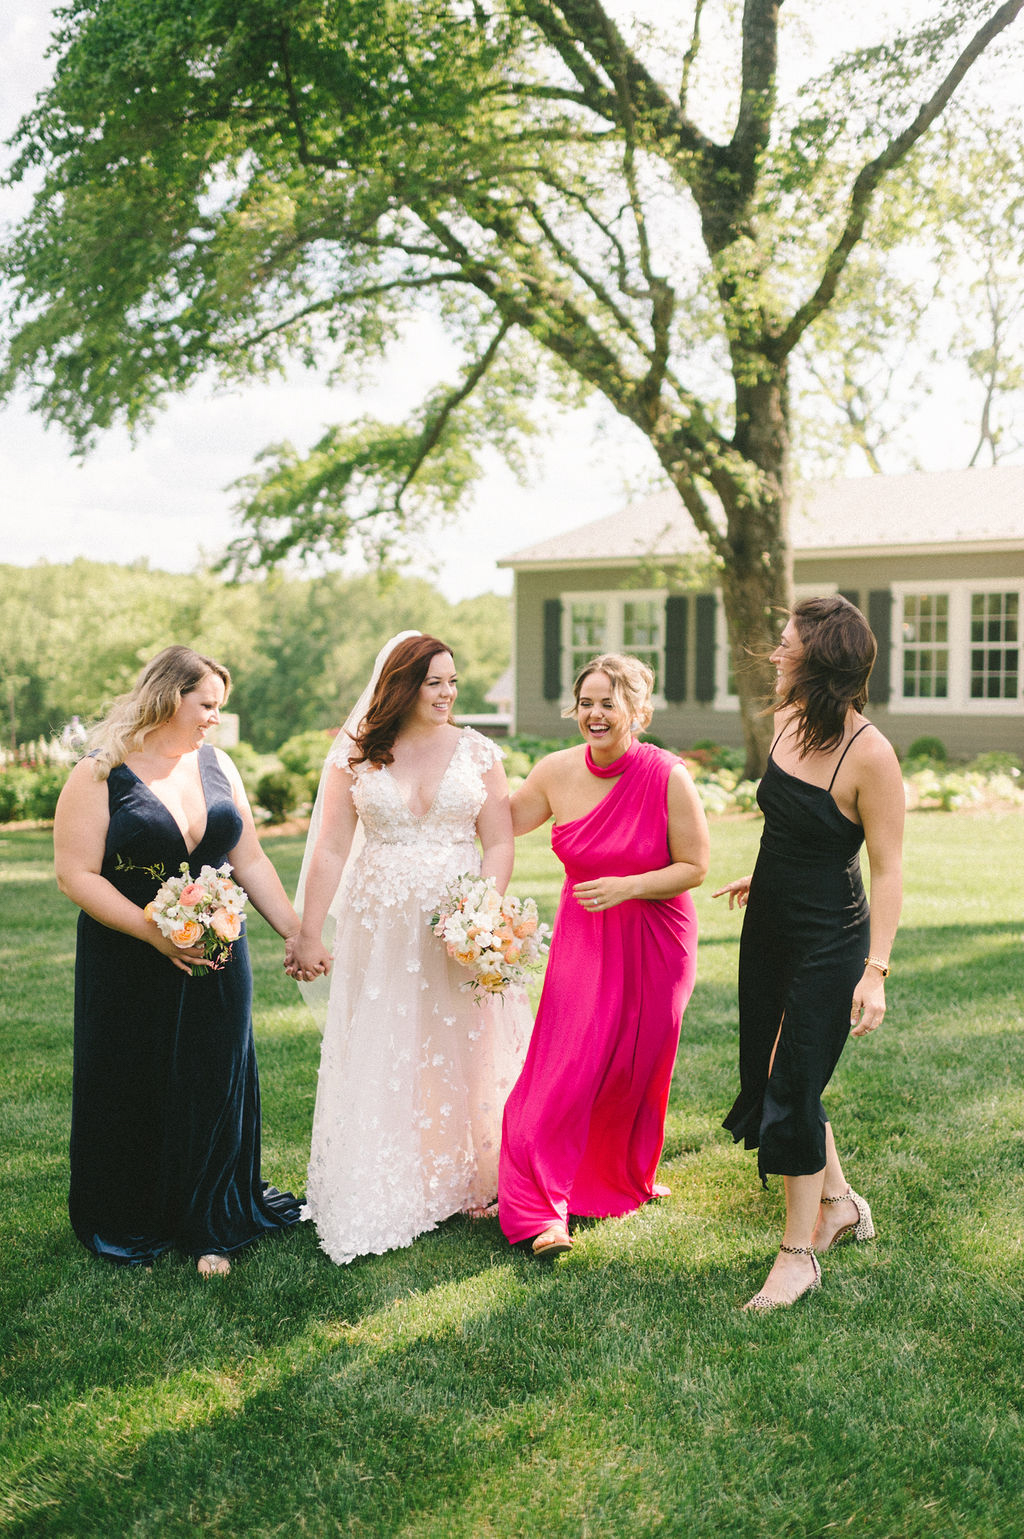 bride and bridesmaids in assorted color dresses